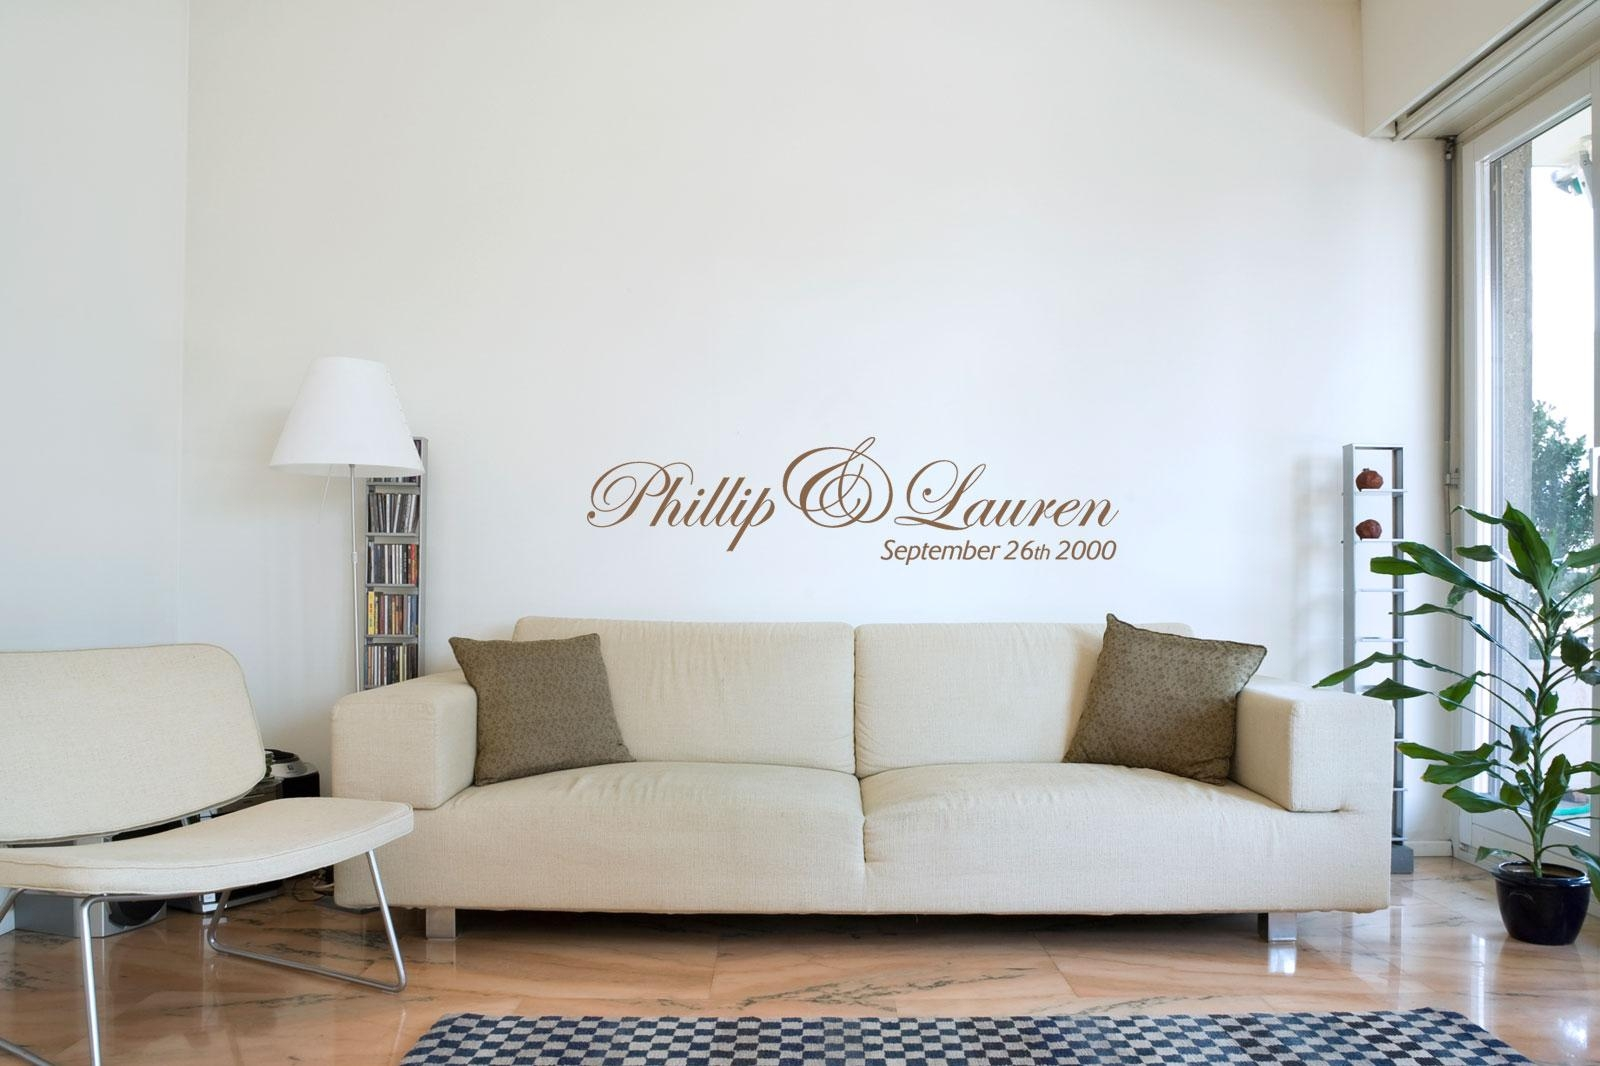 Wall Decals For Living Room Living Room Paint Diy Living Room Wall For Wall Pictures For Living Room (View 3 of 20)